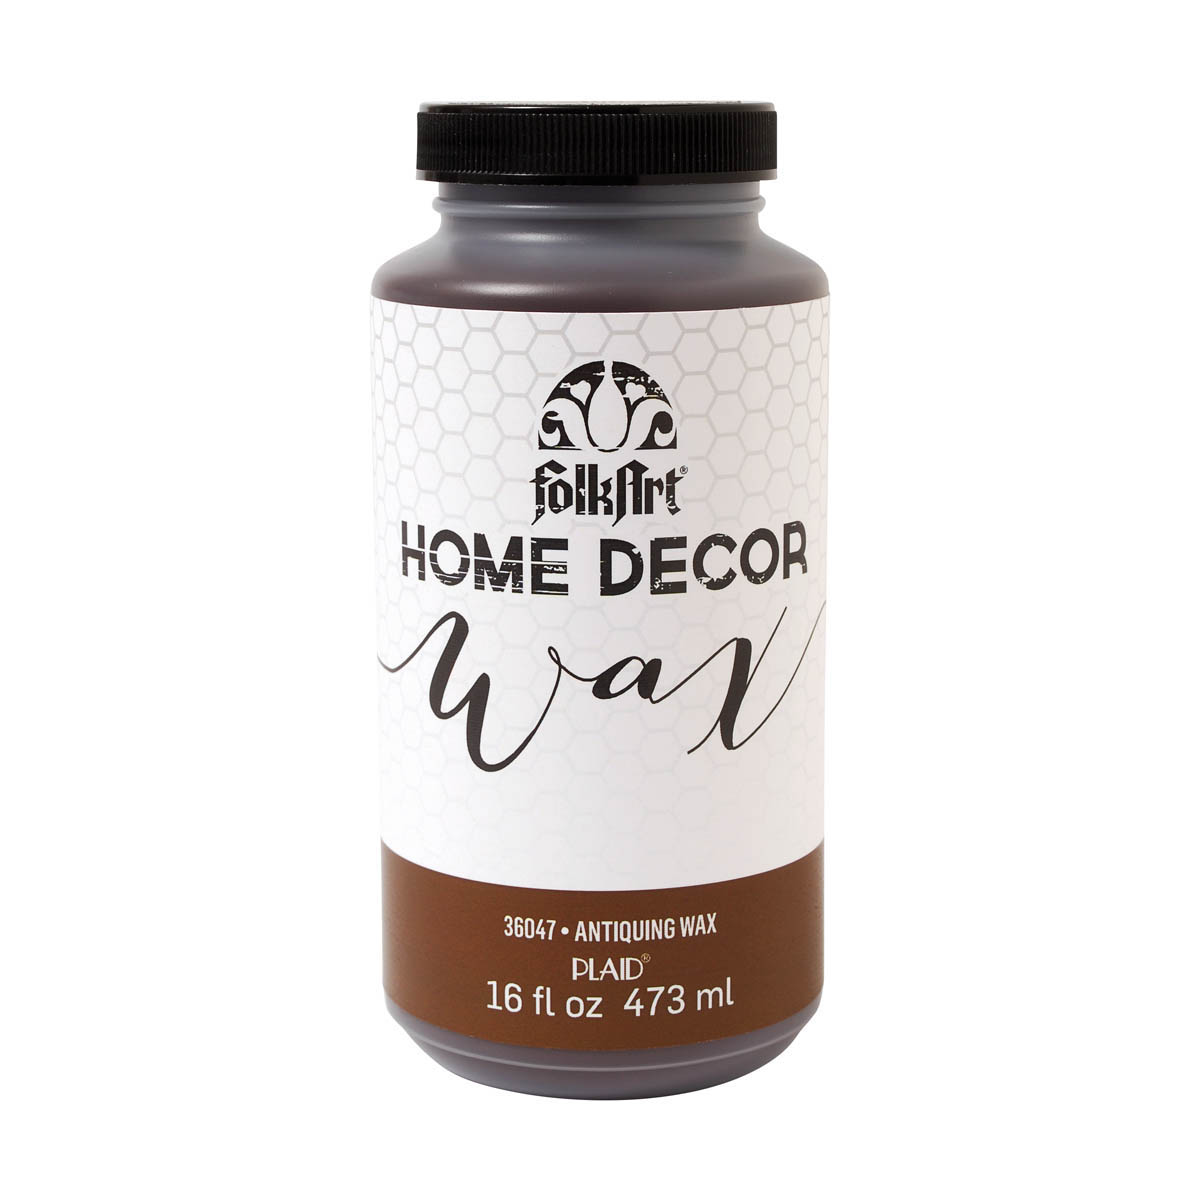 FolkArt ® Home Decor™ Wax - Antiquing, 16 oz. - 36047